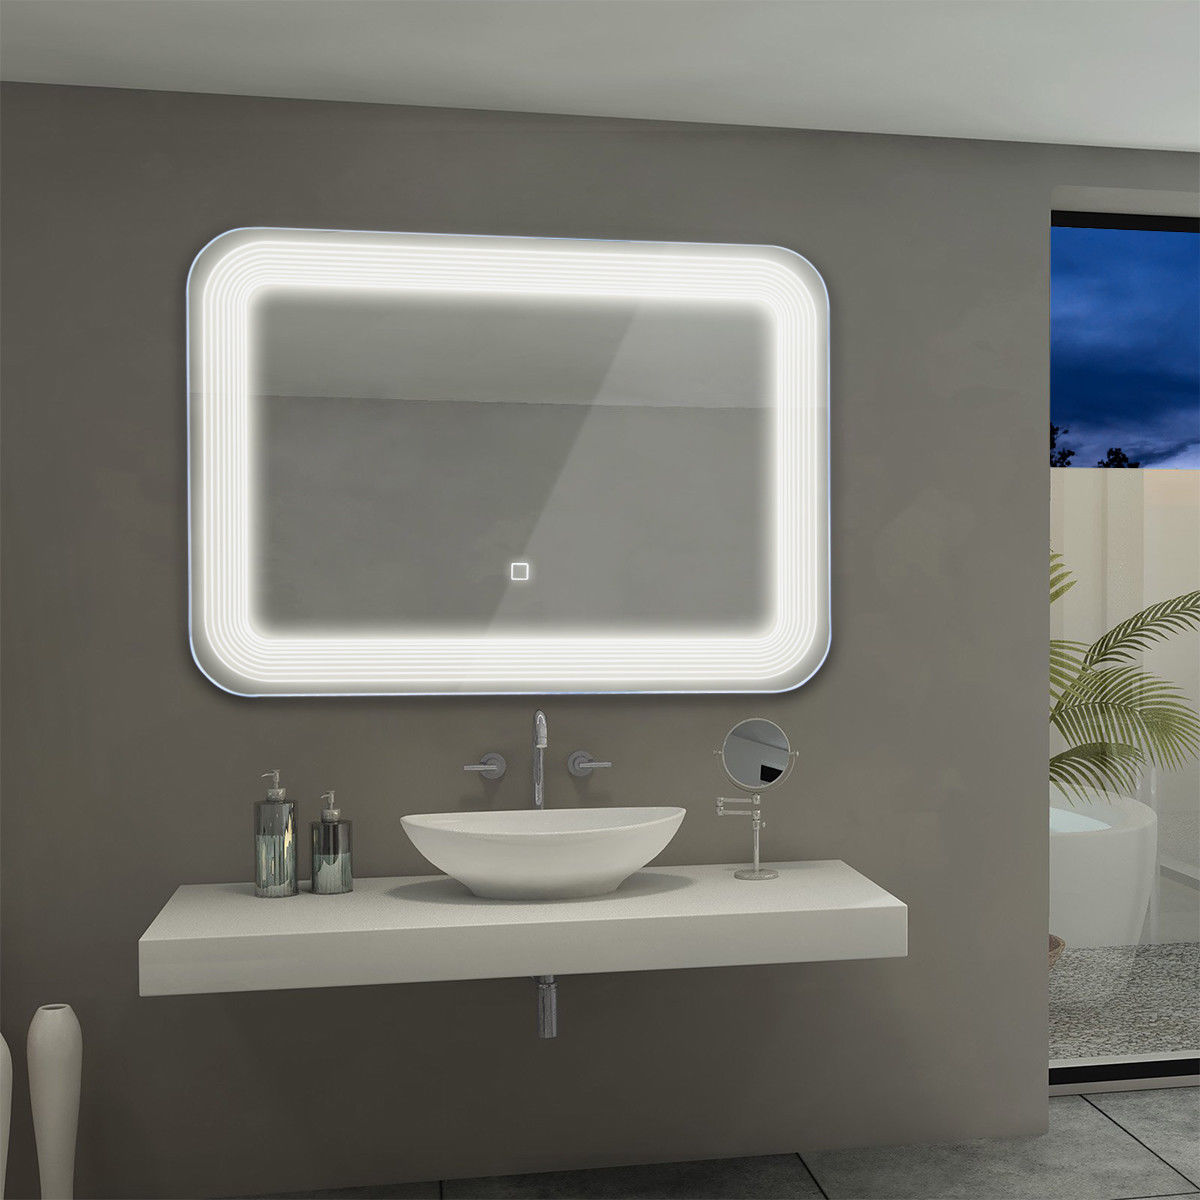 Product Image Costway LED Wall Mount Mirror Bathroom Vanity Makeup  Illuminated Mirror W/Touch Button